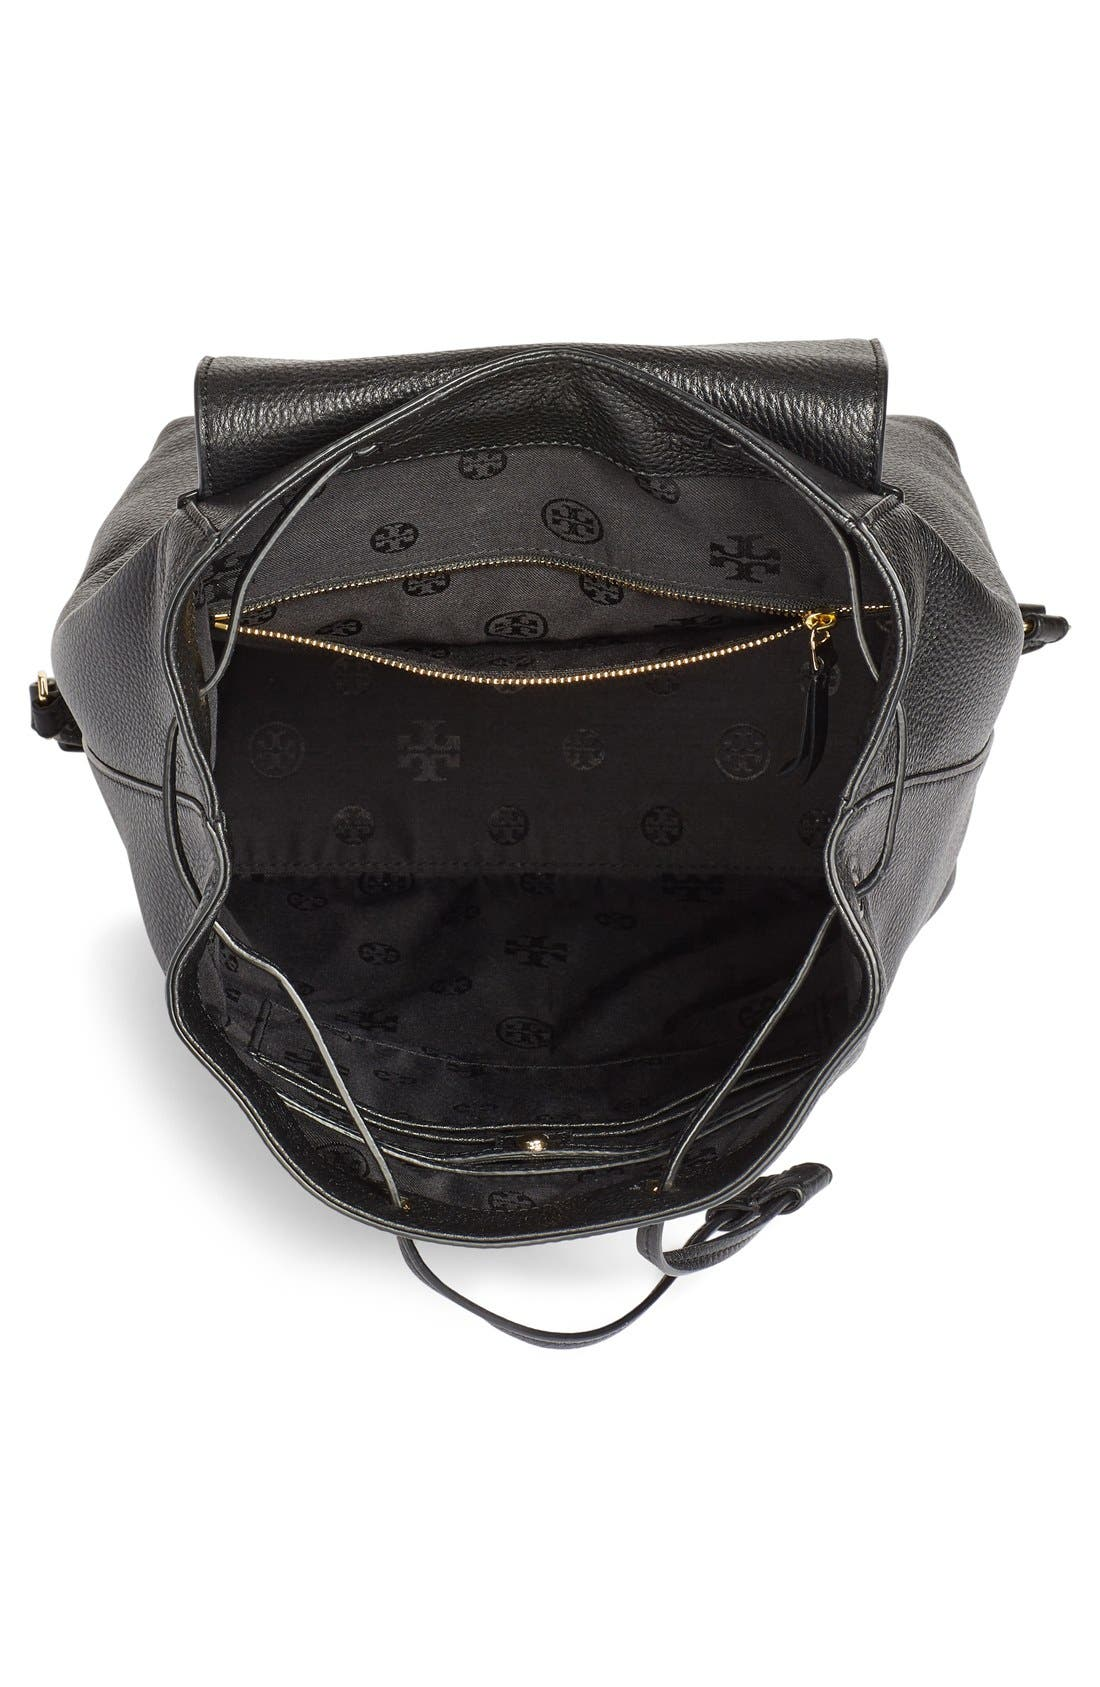 TORY BURCH,                             'Harper' Leather Backpack,                             Alternate thumbnail 4, color,                             012